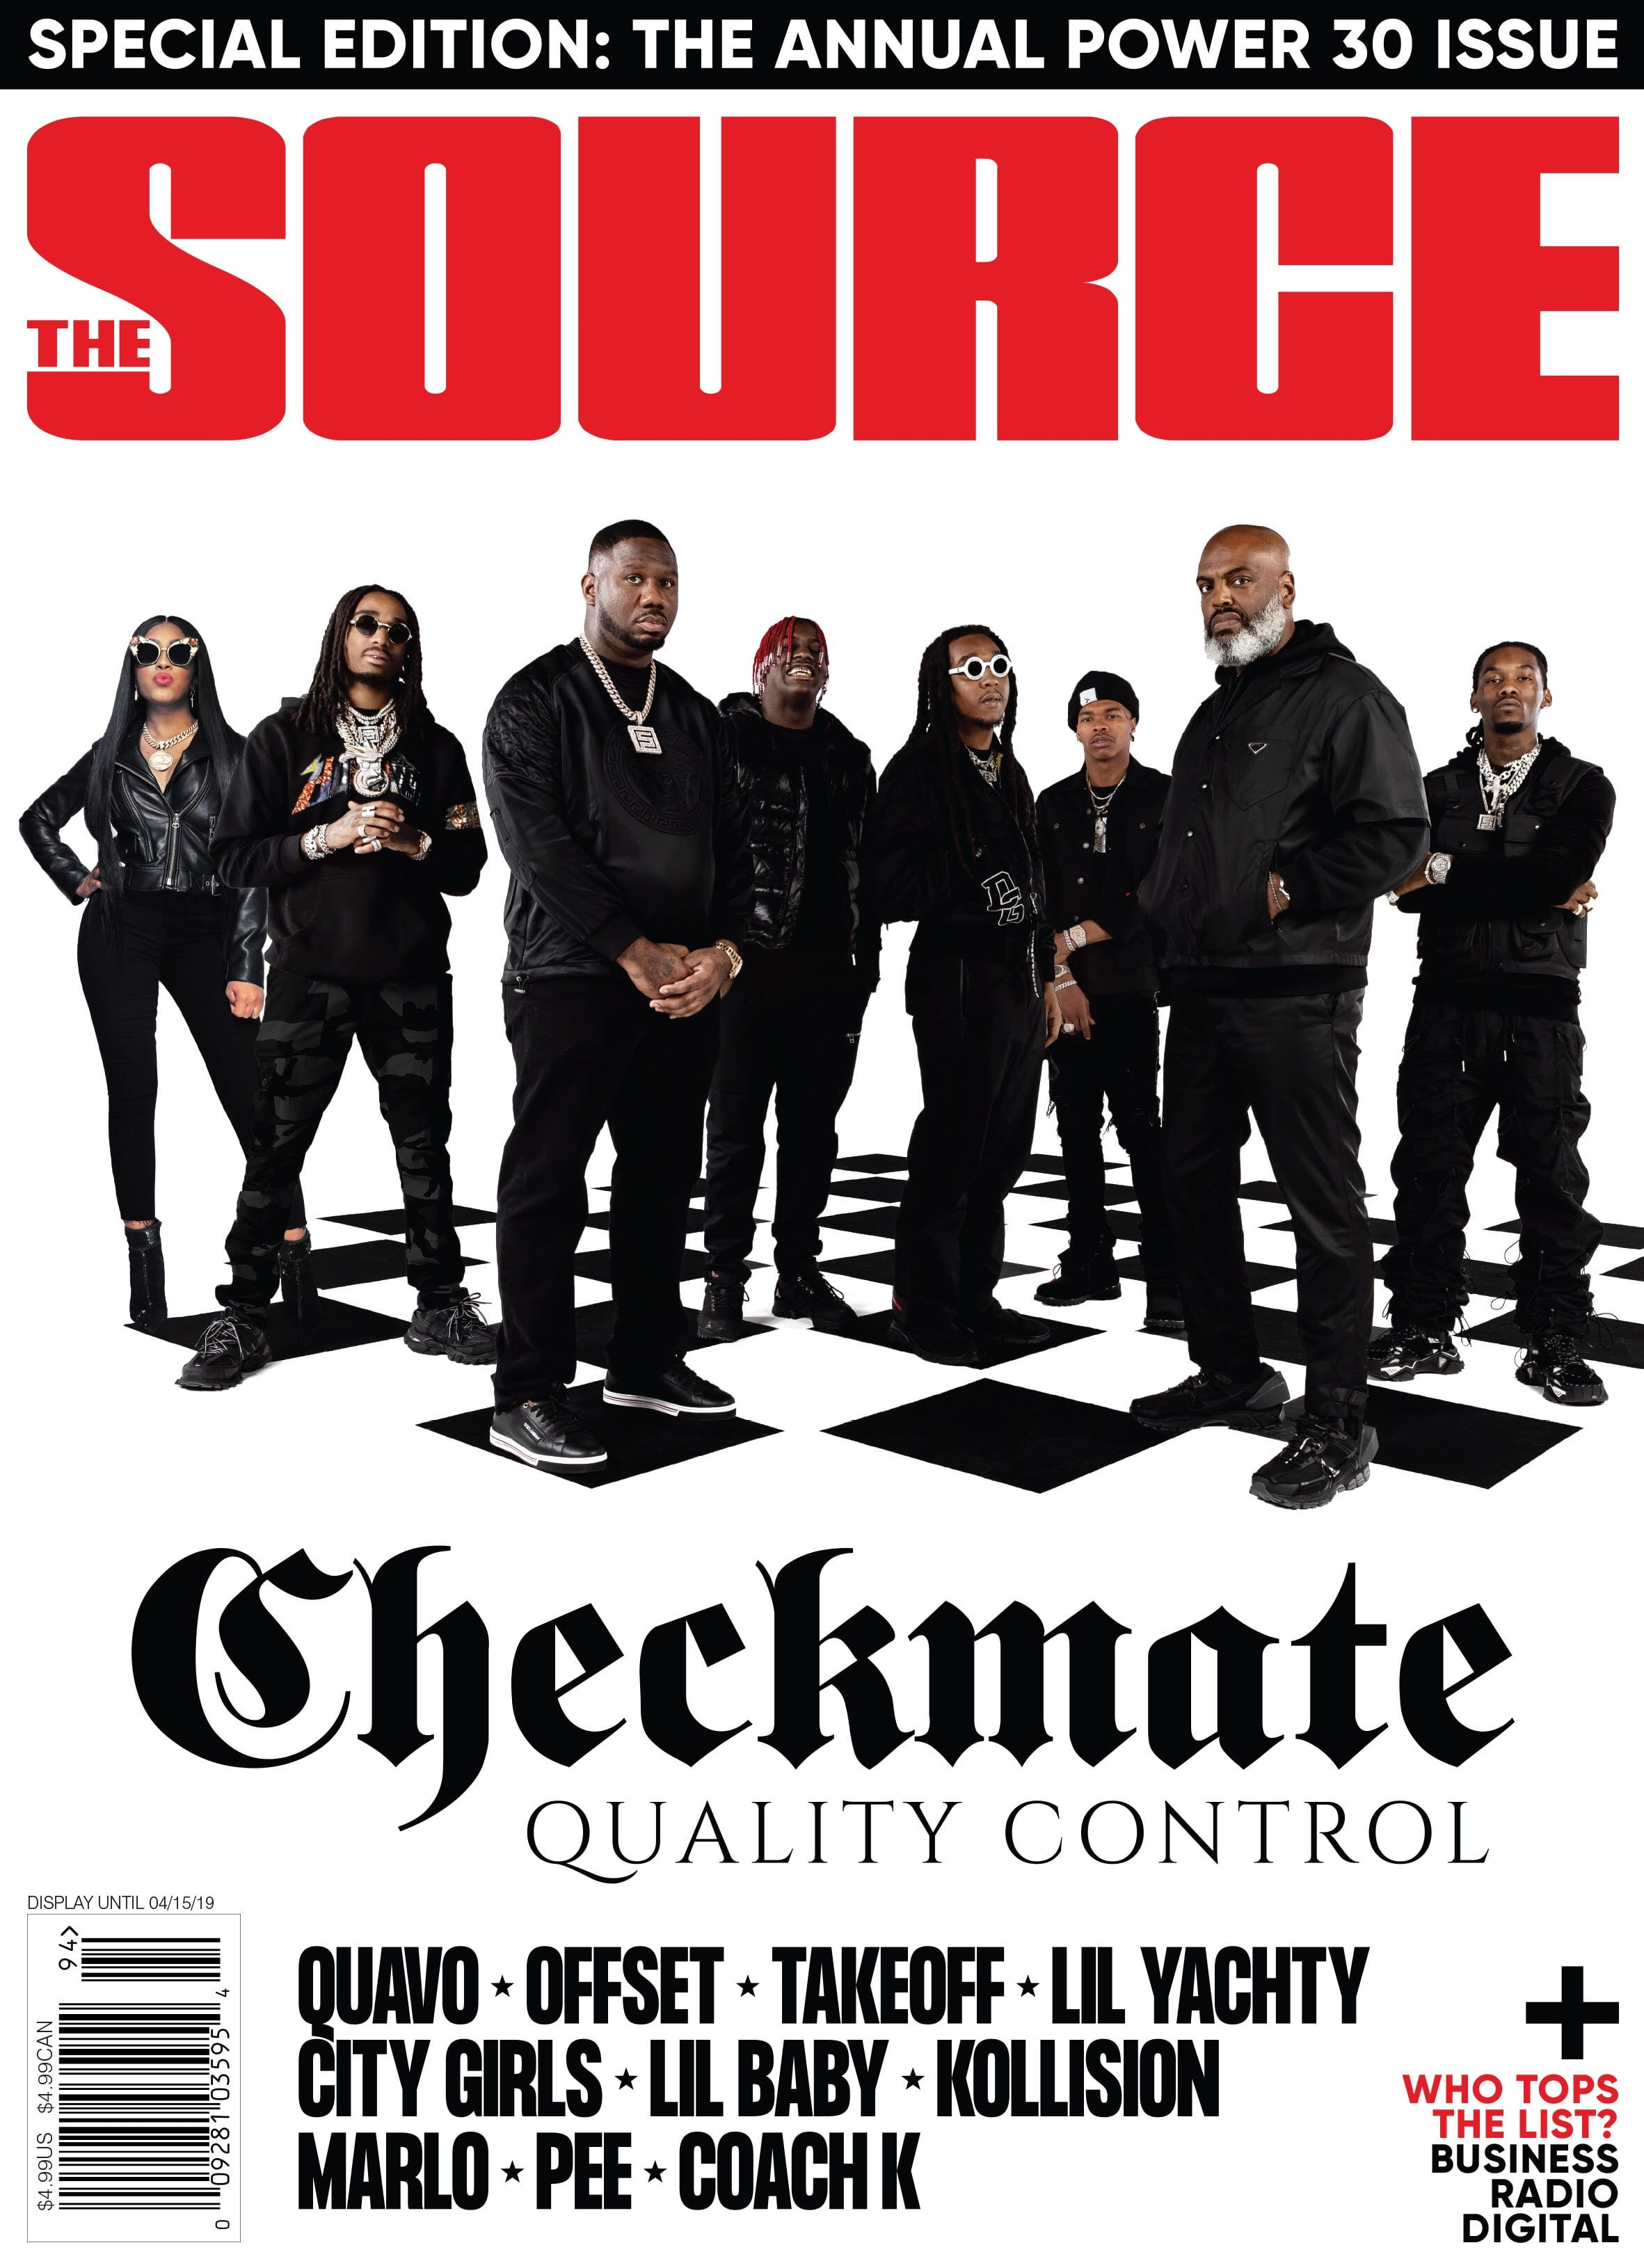 Exclusive: Quality Control Music, Migos, Lil' Yachty, Lil' Baby & City Girls Crown The Source POWER30 Cover